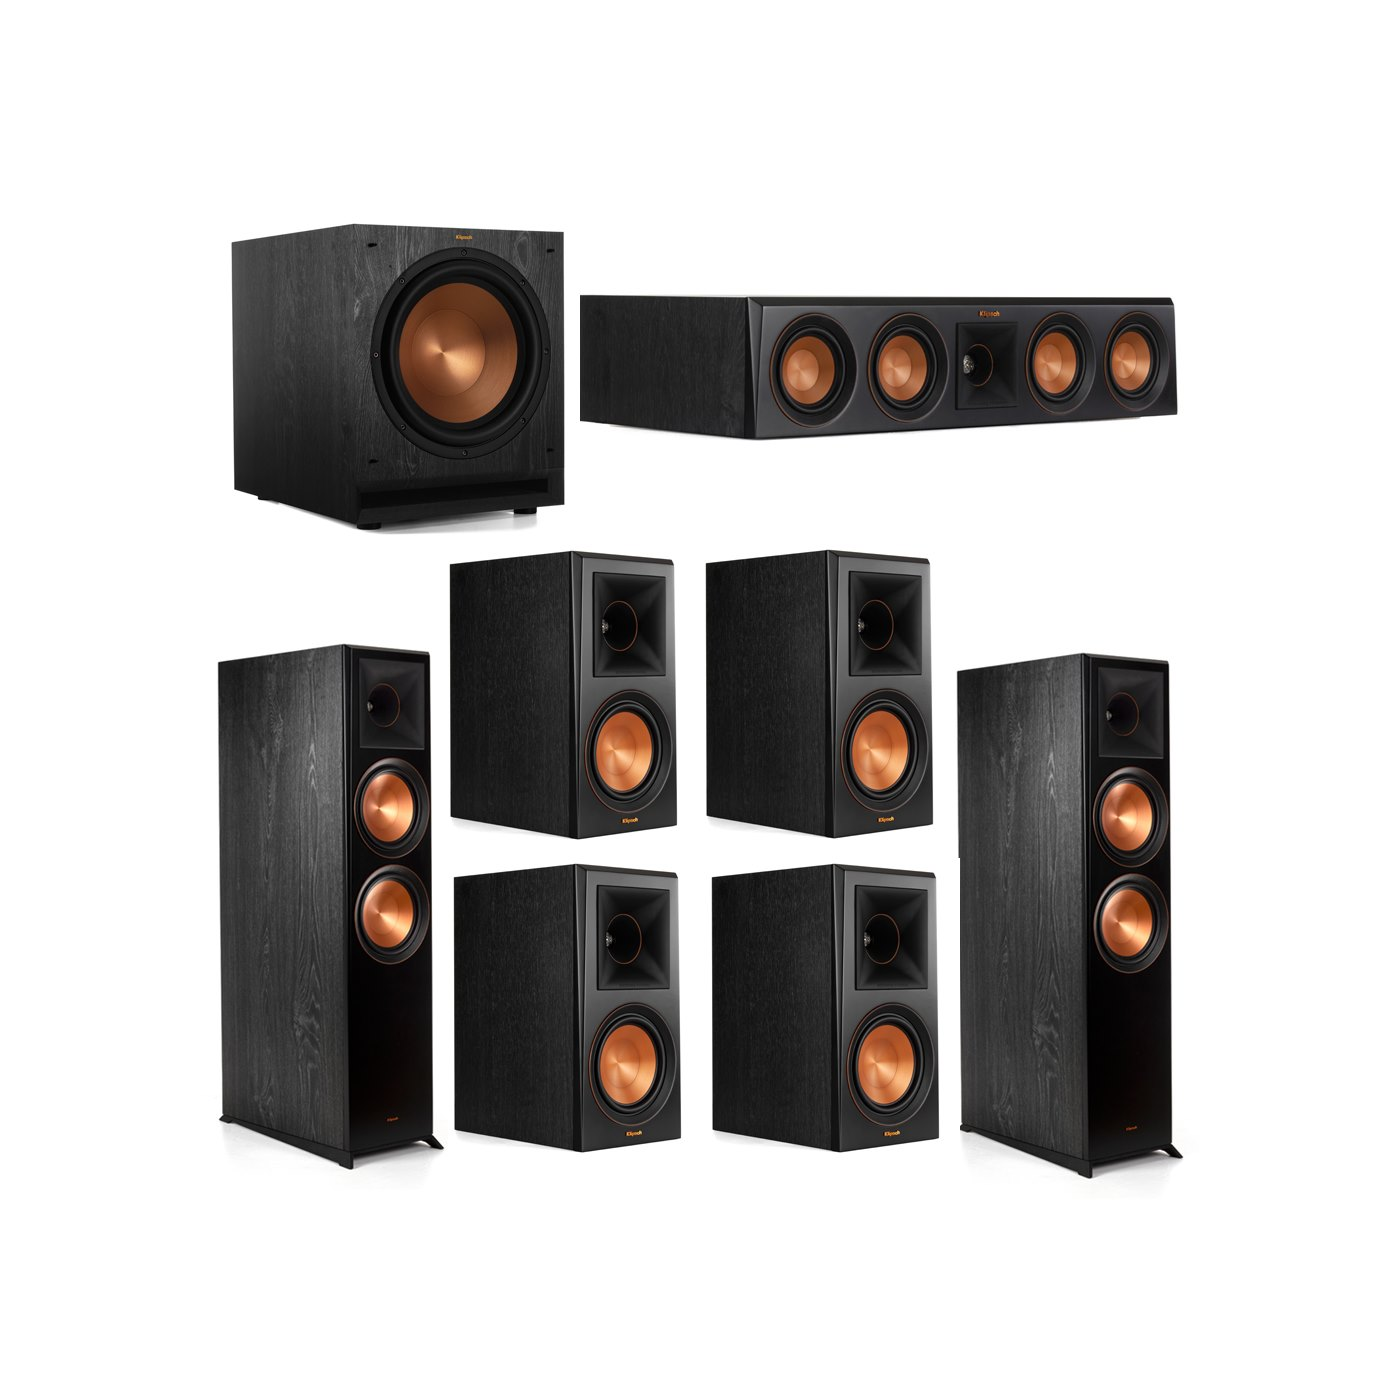 Klipsch 7.1.2 System - 2 RP-8060FA Dolby Atmos Speakers, 1 RP-404C, 4 RP-600M Speakers, 1 SPL-120